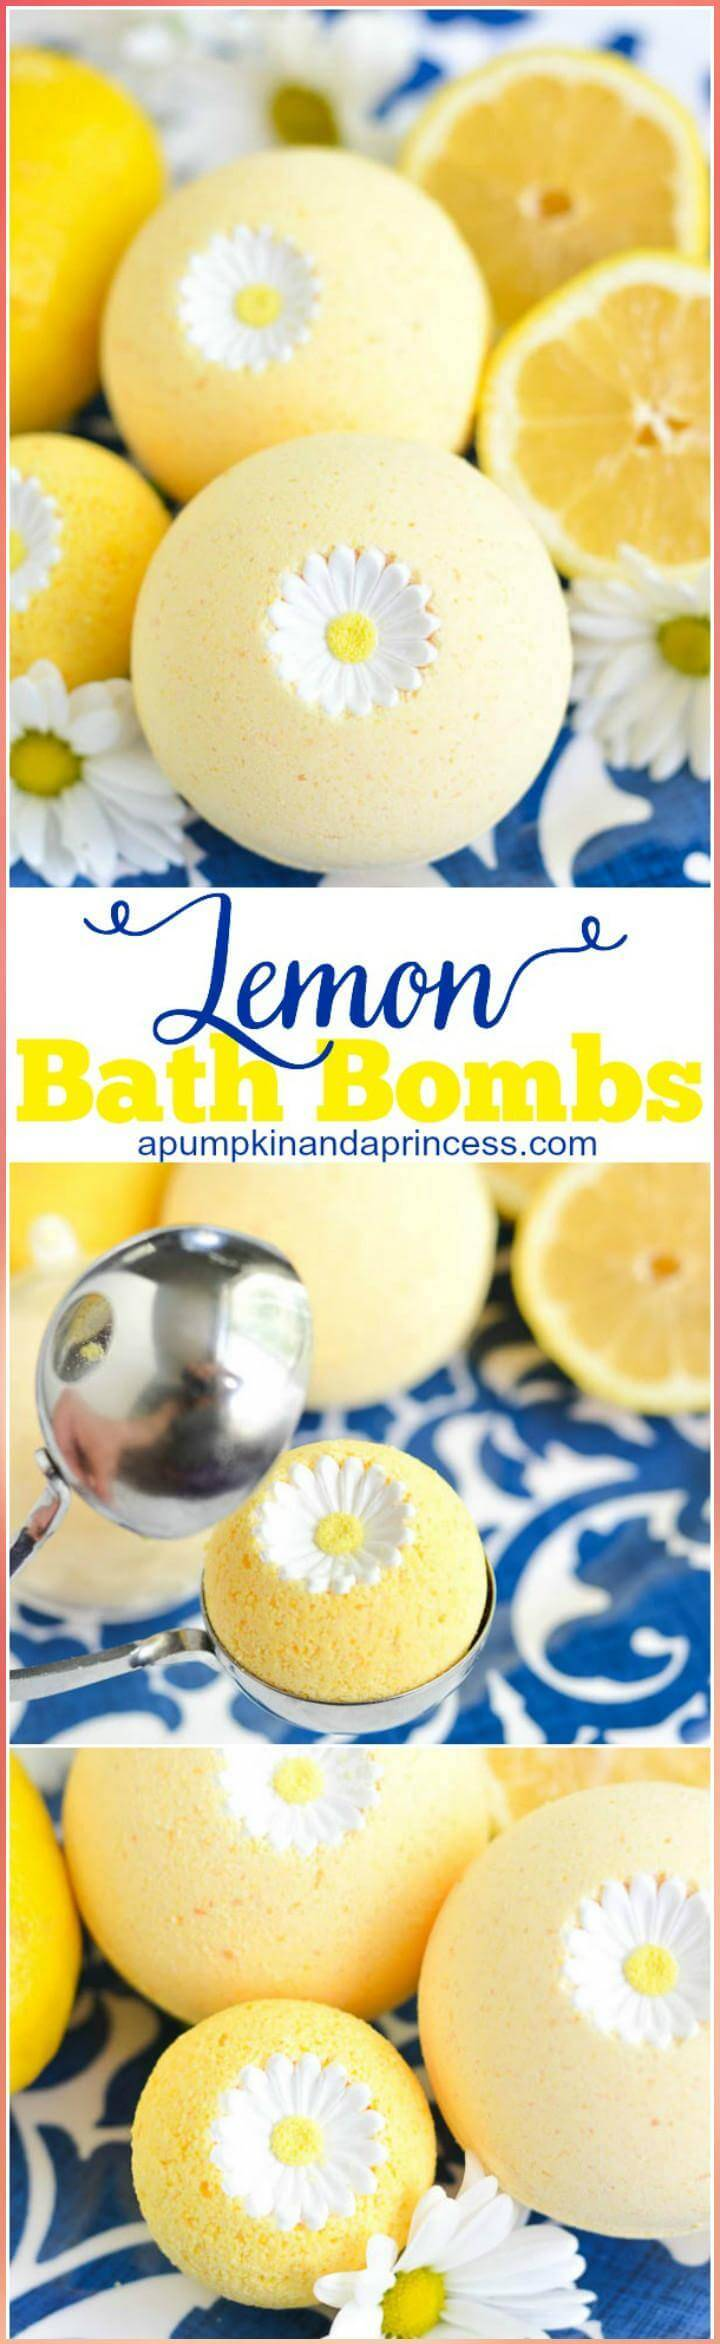 easy lemon bath boms Mother's Day gift